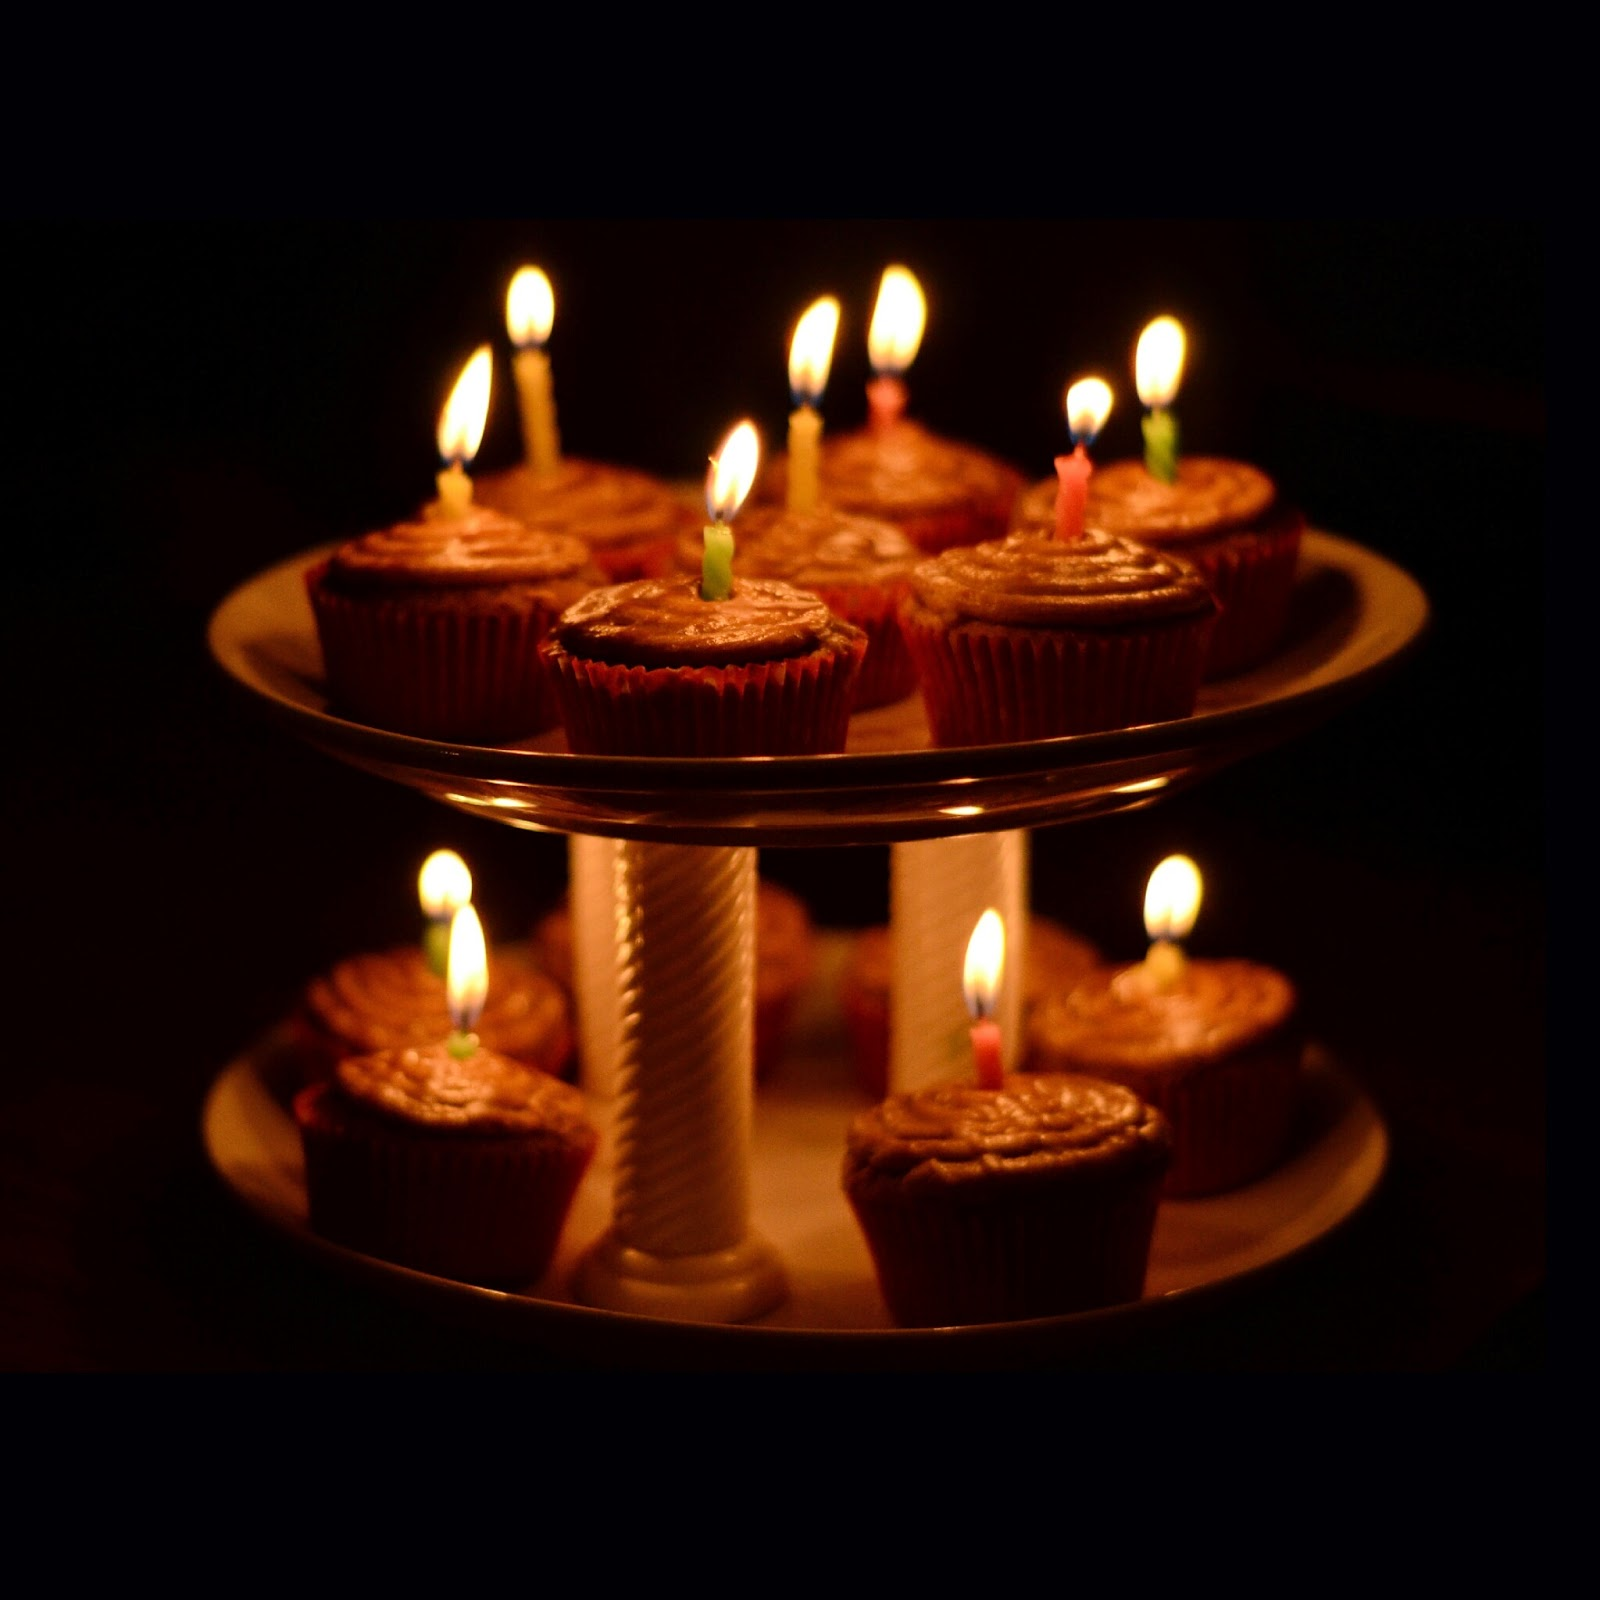 Celebrating a birthday by baking a tower of salted caramel cupcakes decorated with lit candles at midnight